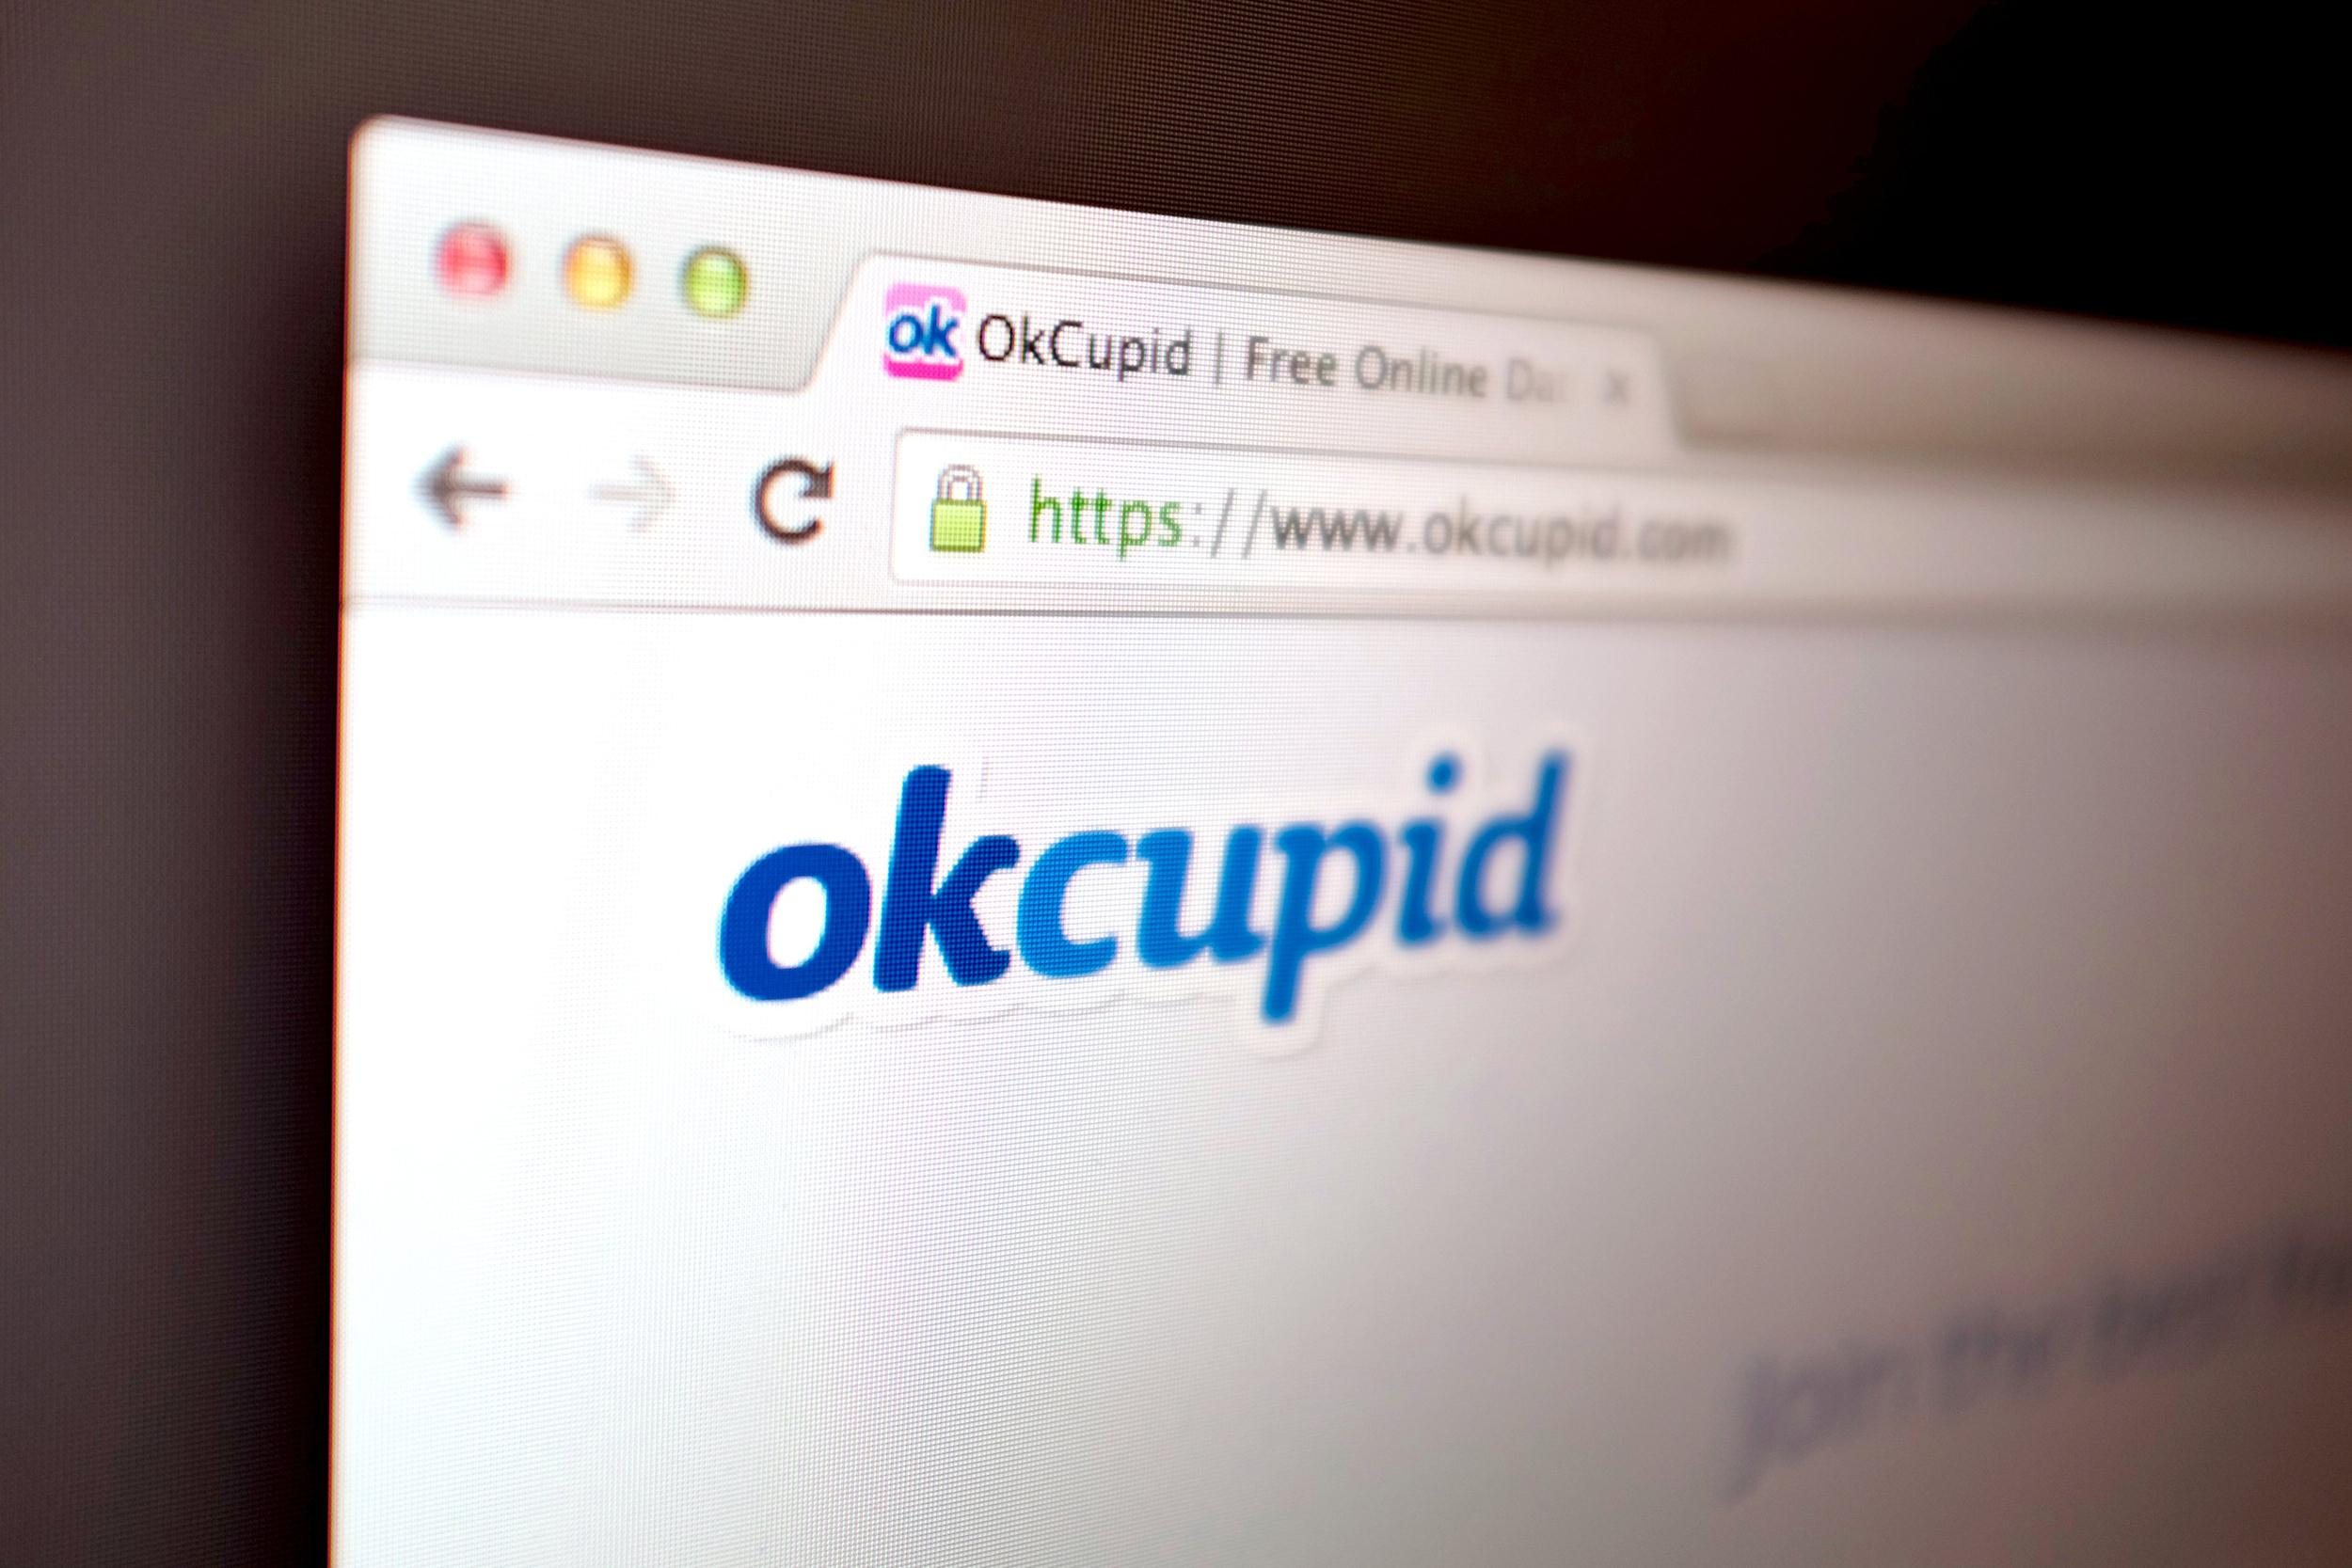 The Secret to Finding Love on OkCupid